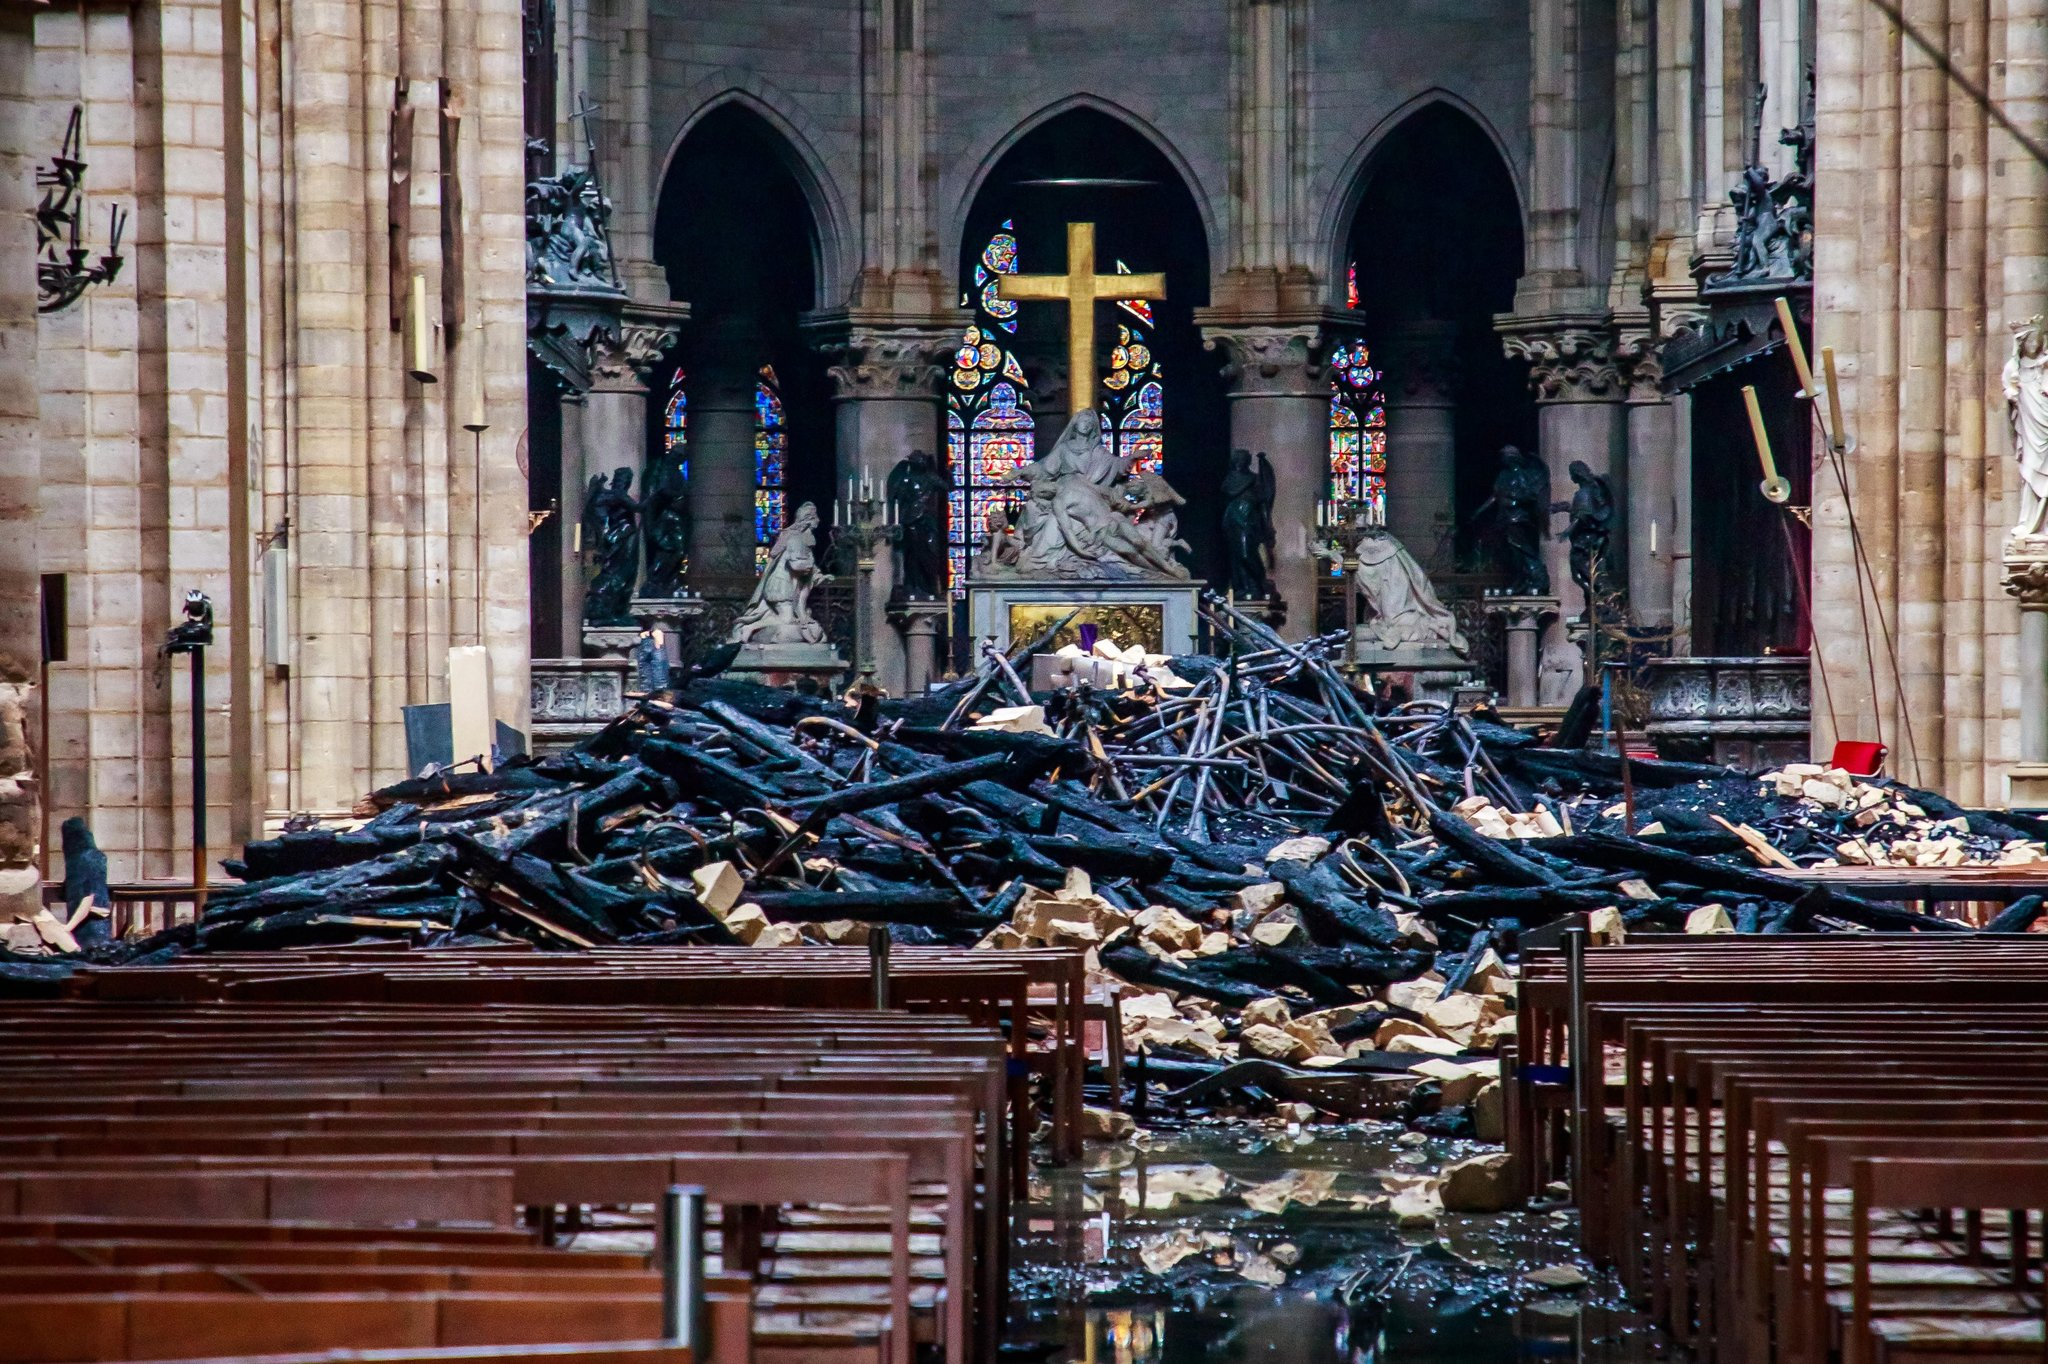 https://www.nytimes.com/2019/04/16/world/europe/photos-of-notre-dame-fire.html